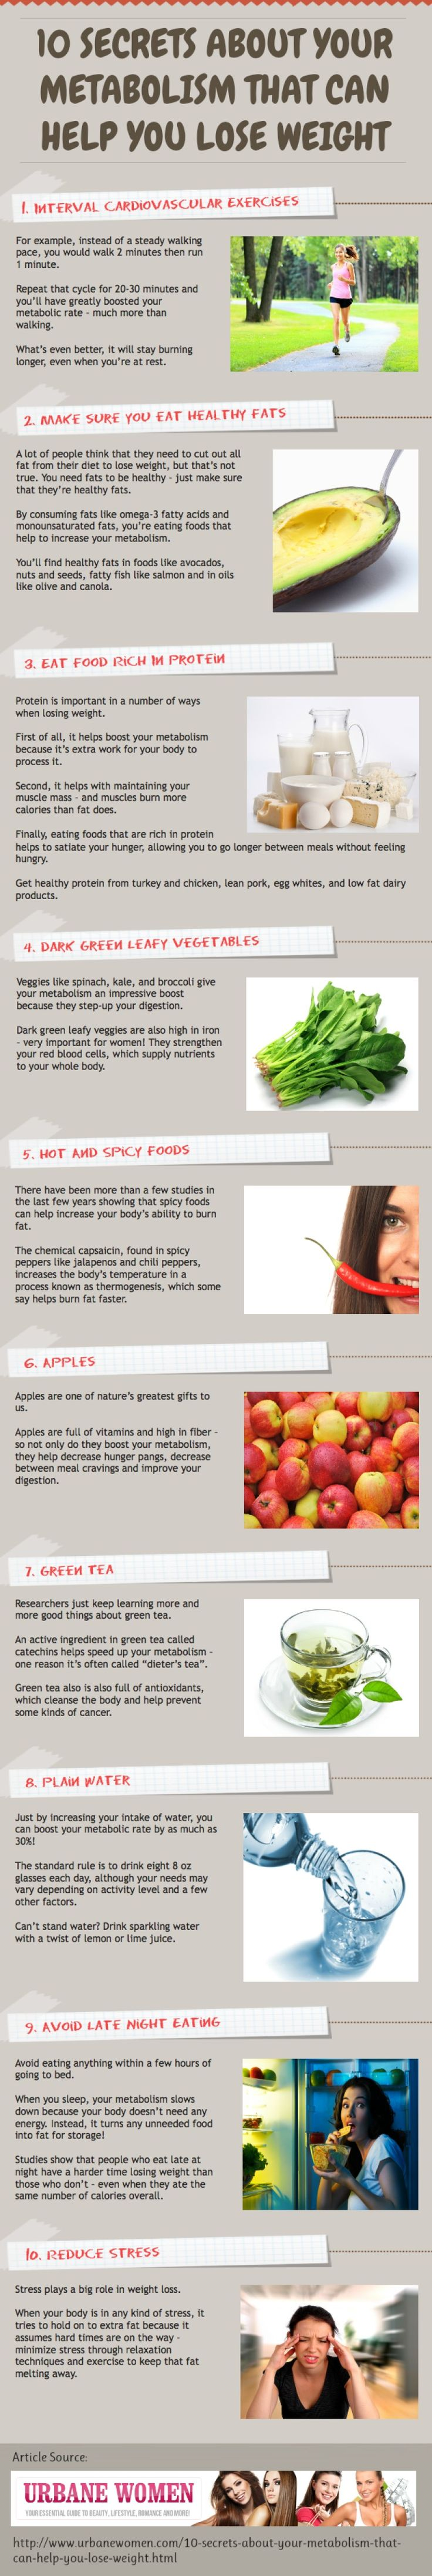 look at this great site-http://weightloss-ht2z73xp.topreviewsonlinenow.com